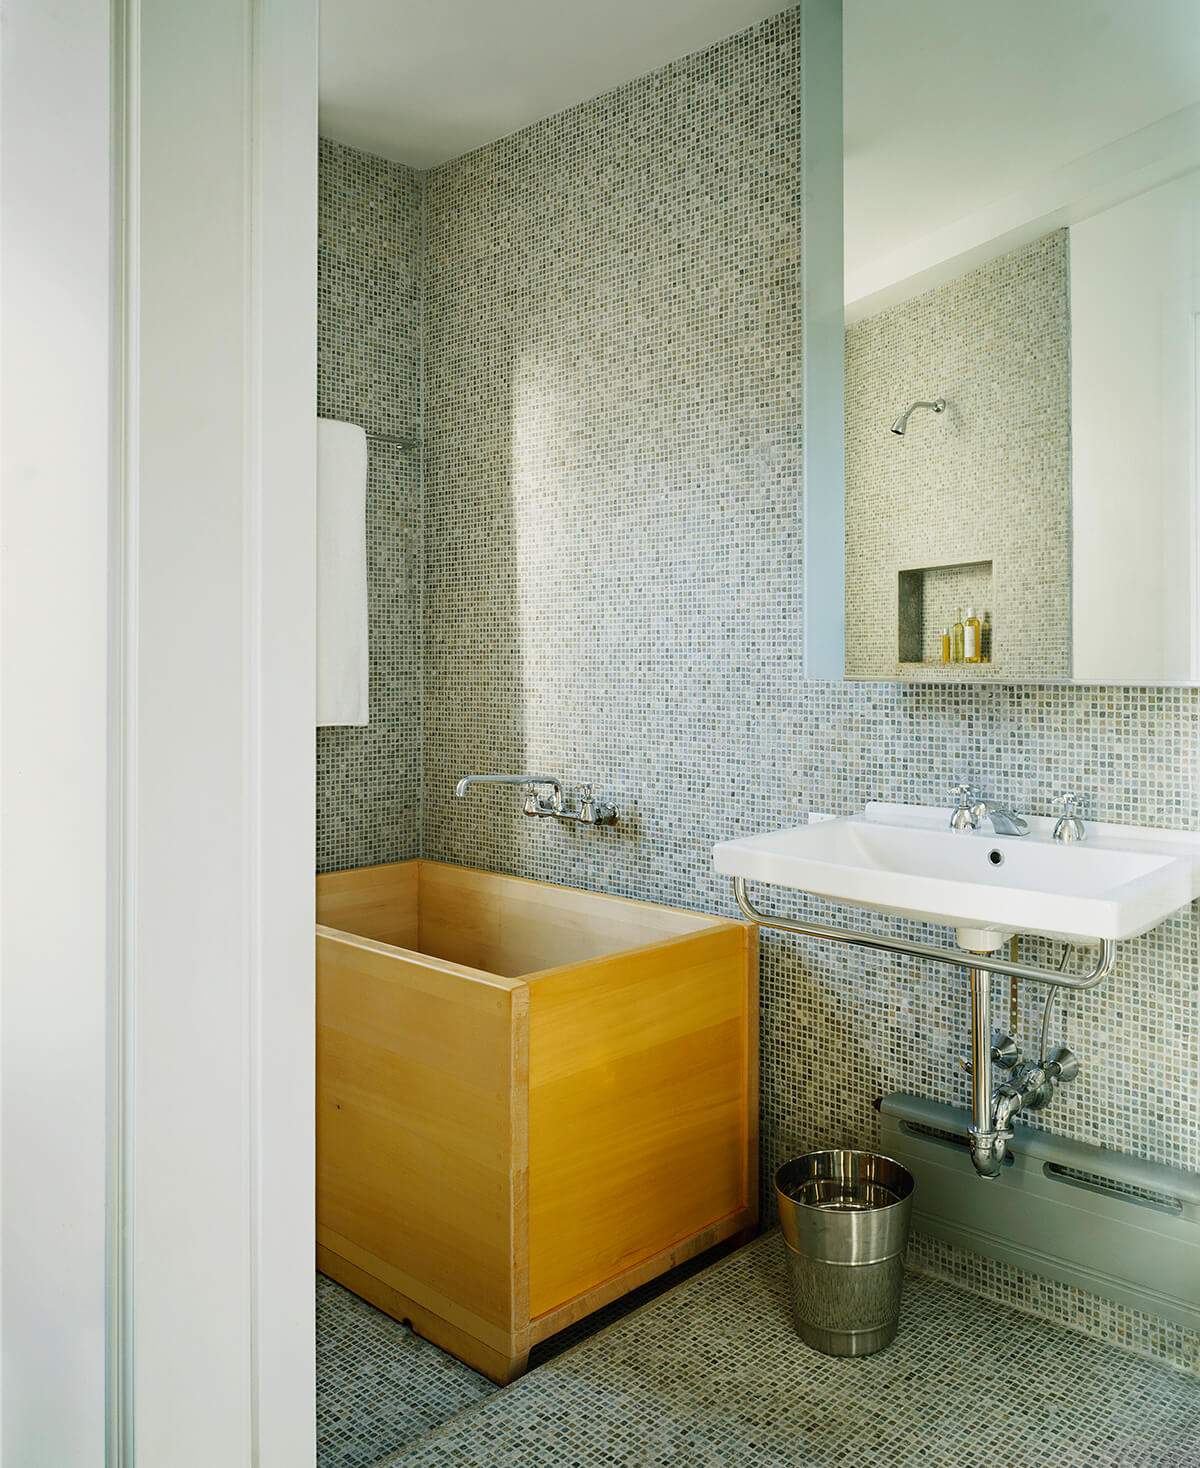 cedar soaking tub in Manhattan Valley apartment